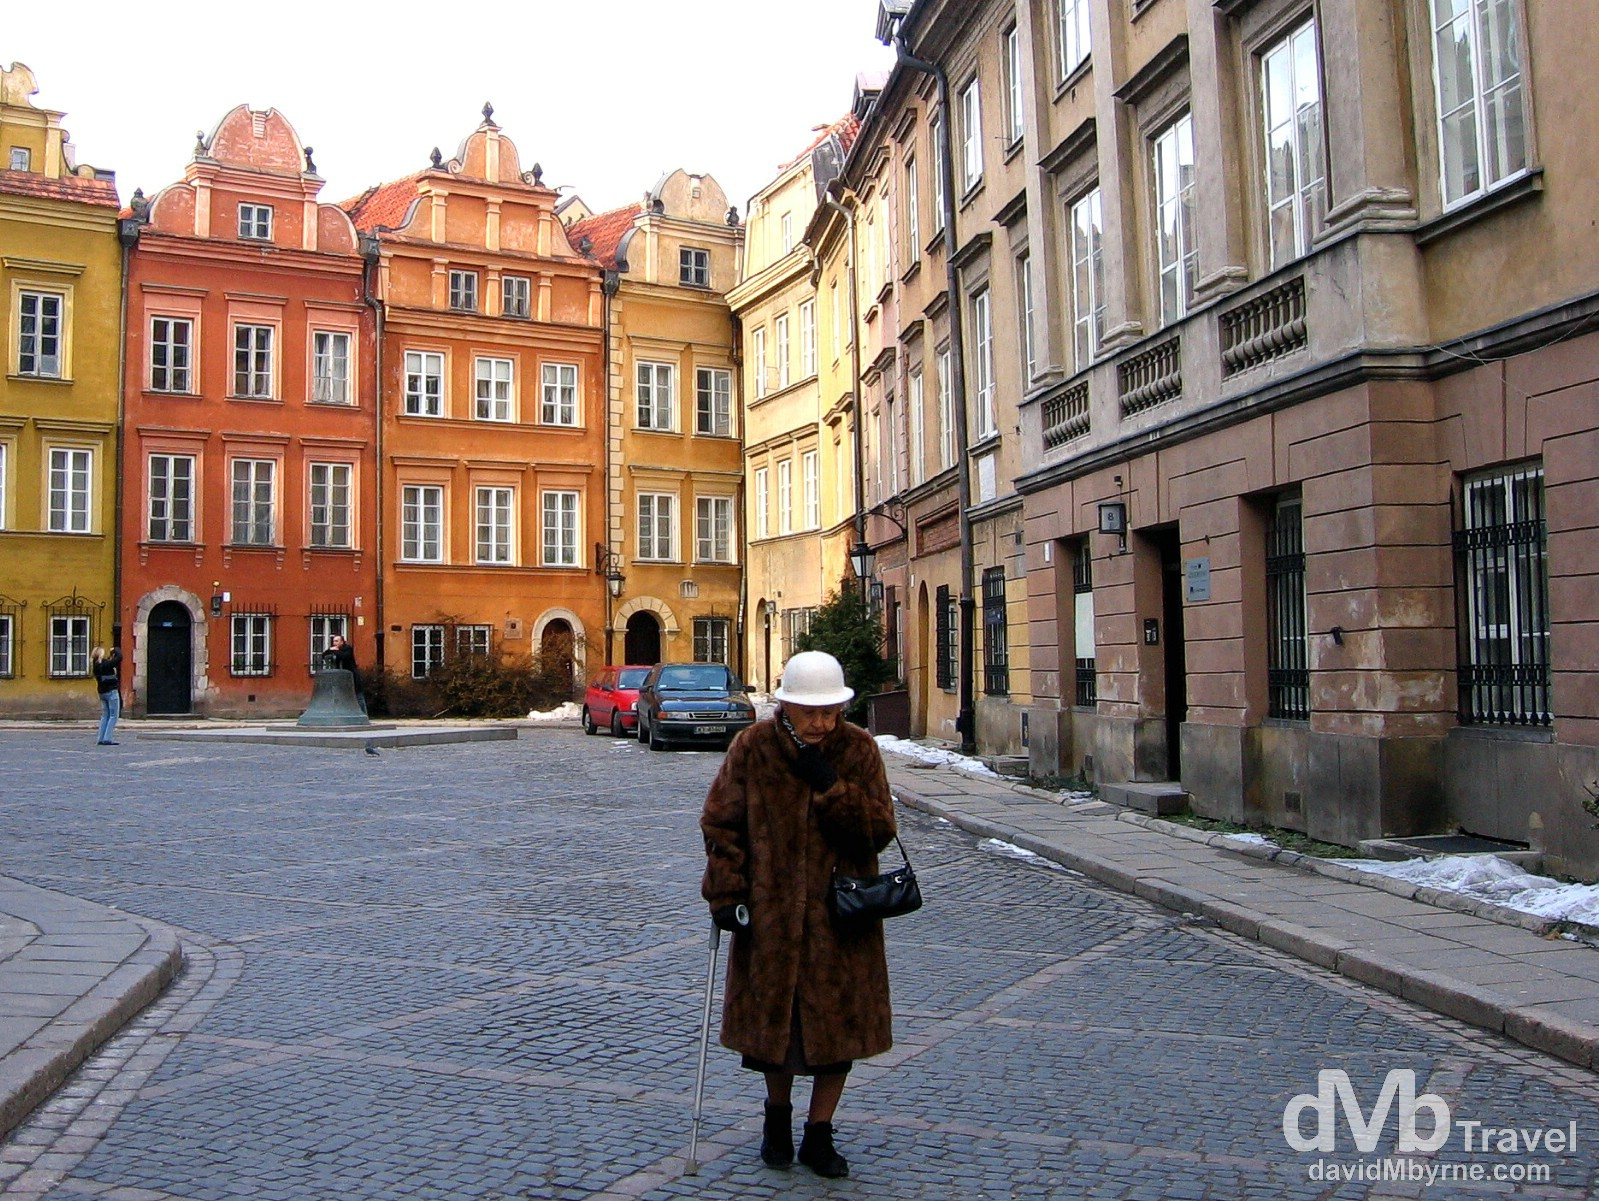 Walking on the restored, UNESCO listed streets of the Old Town district of Warsaw, Poland. March 5, 2006.